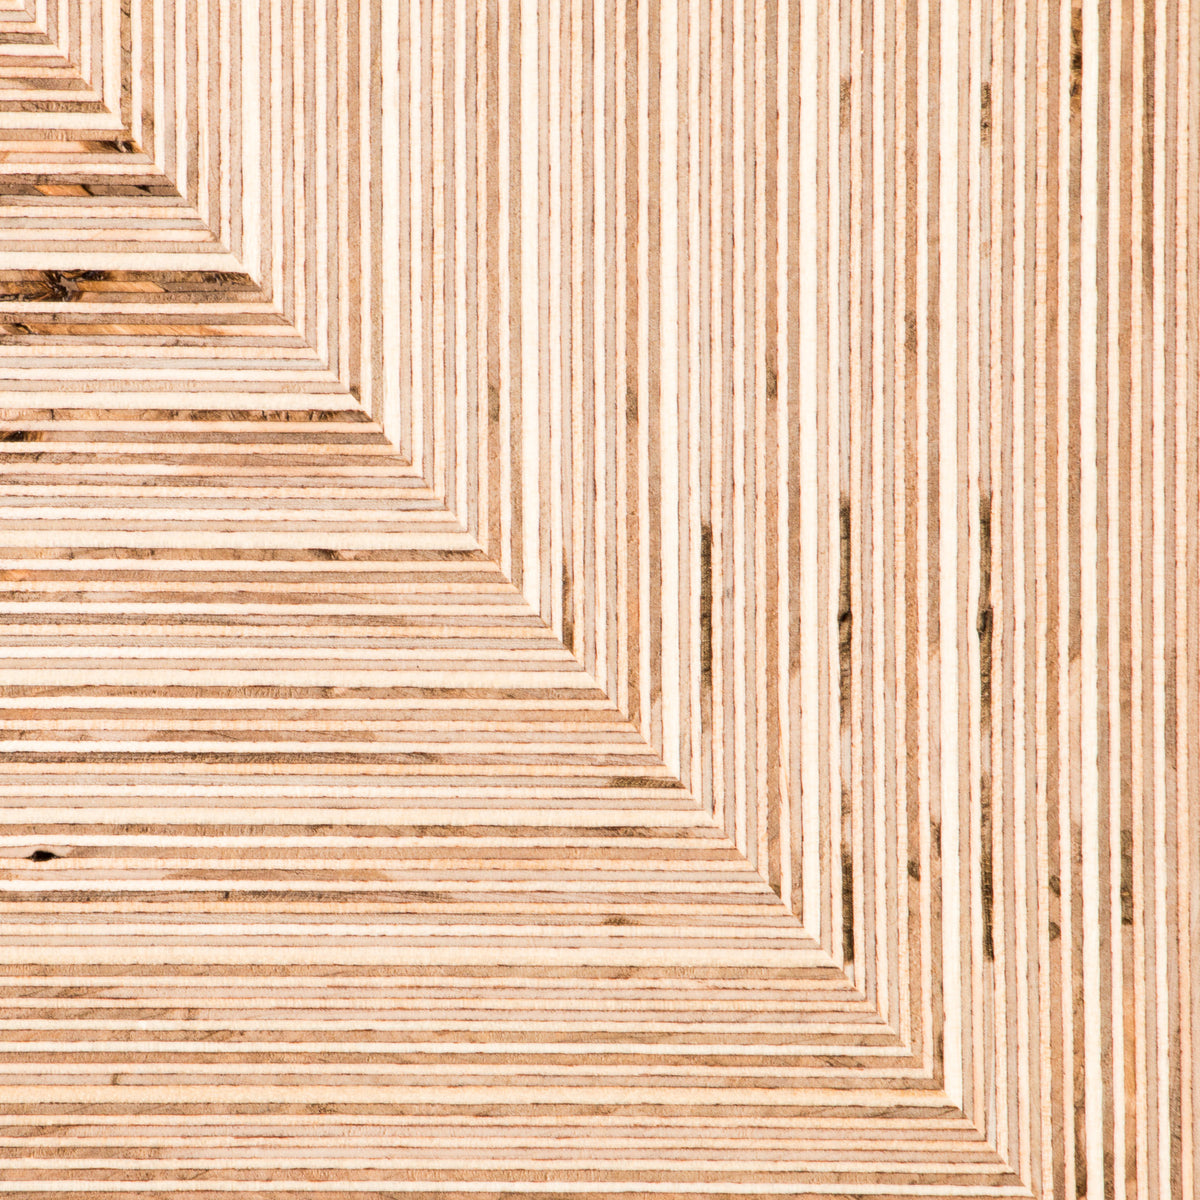 Russian Birch Plywood Pattern